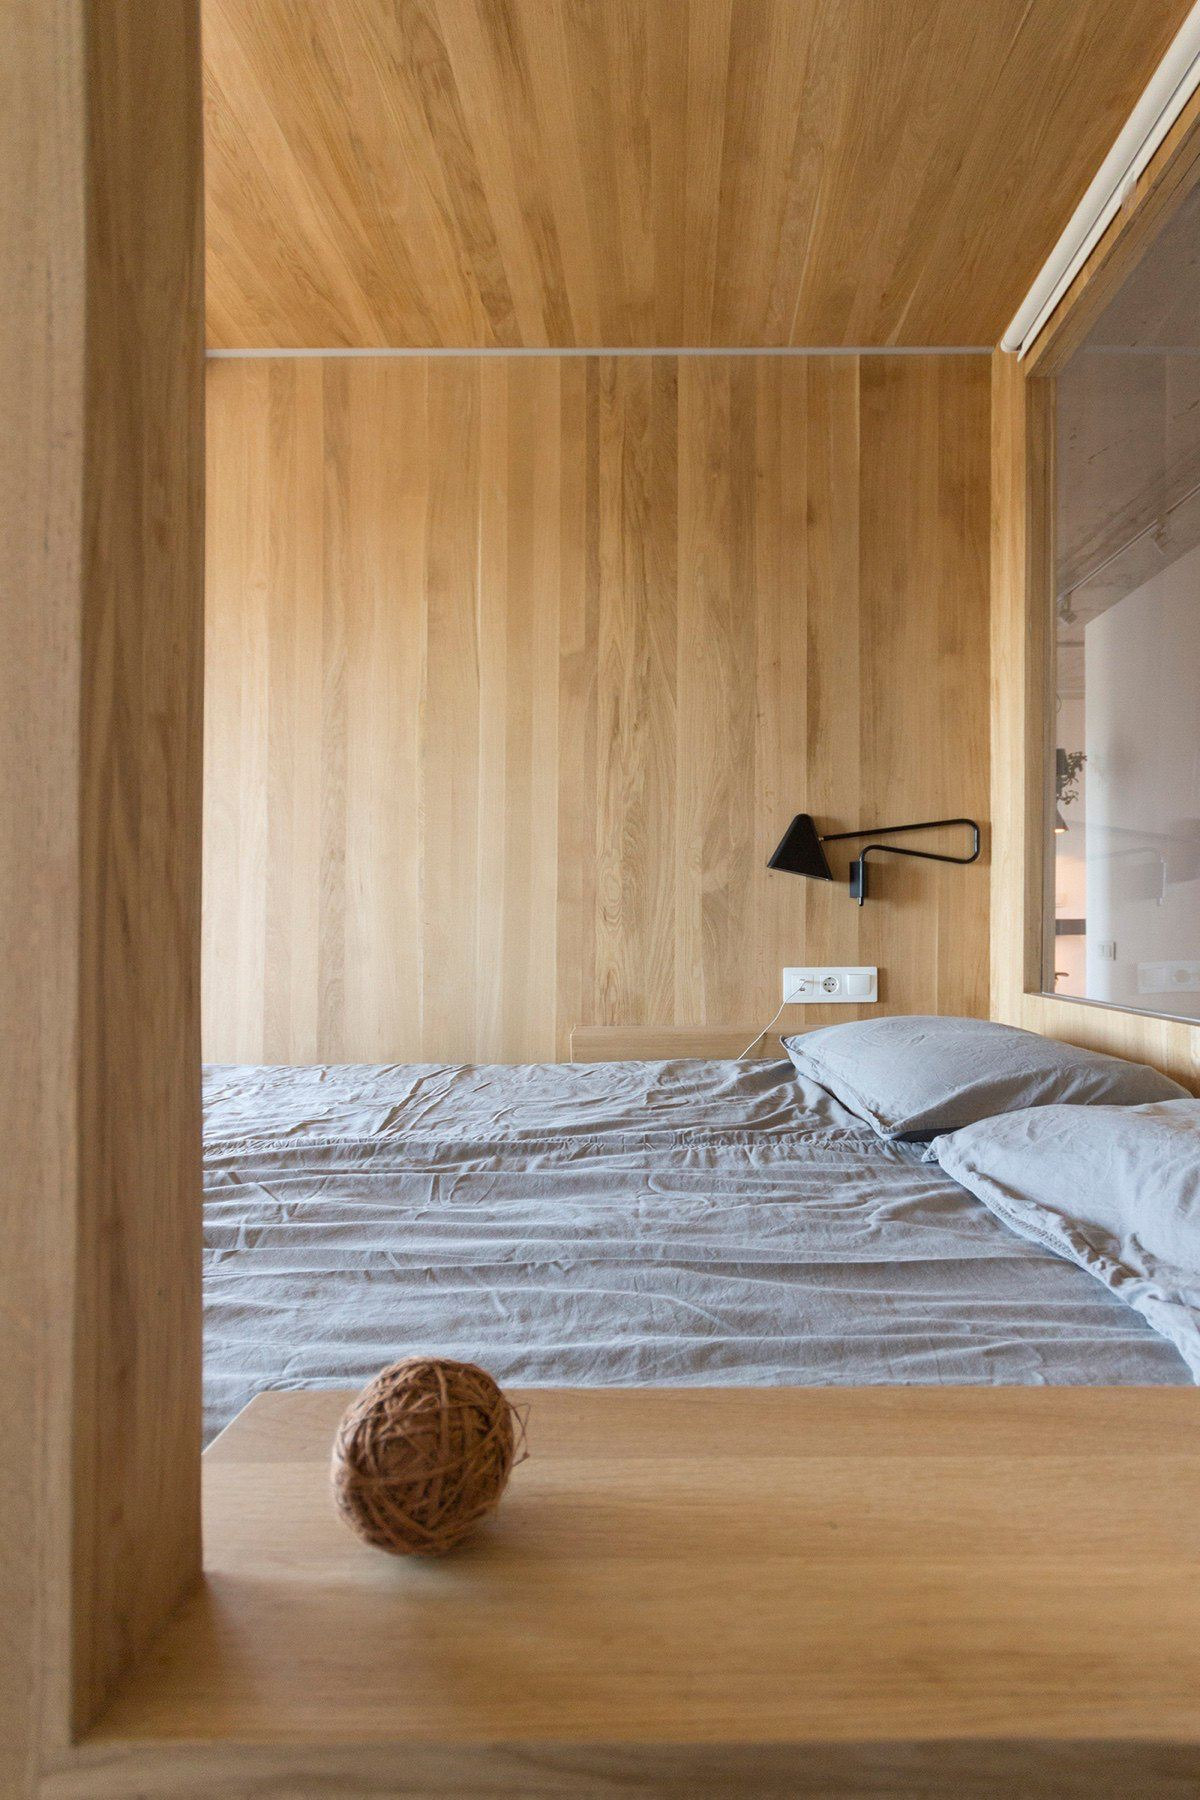 Minimalist Bedroom Grey Bedding Wall Facing Window Ball Of Yarn - Super small studio apartment under 50 square meters includes floor plan